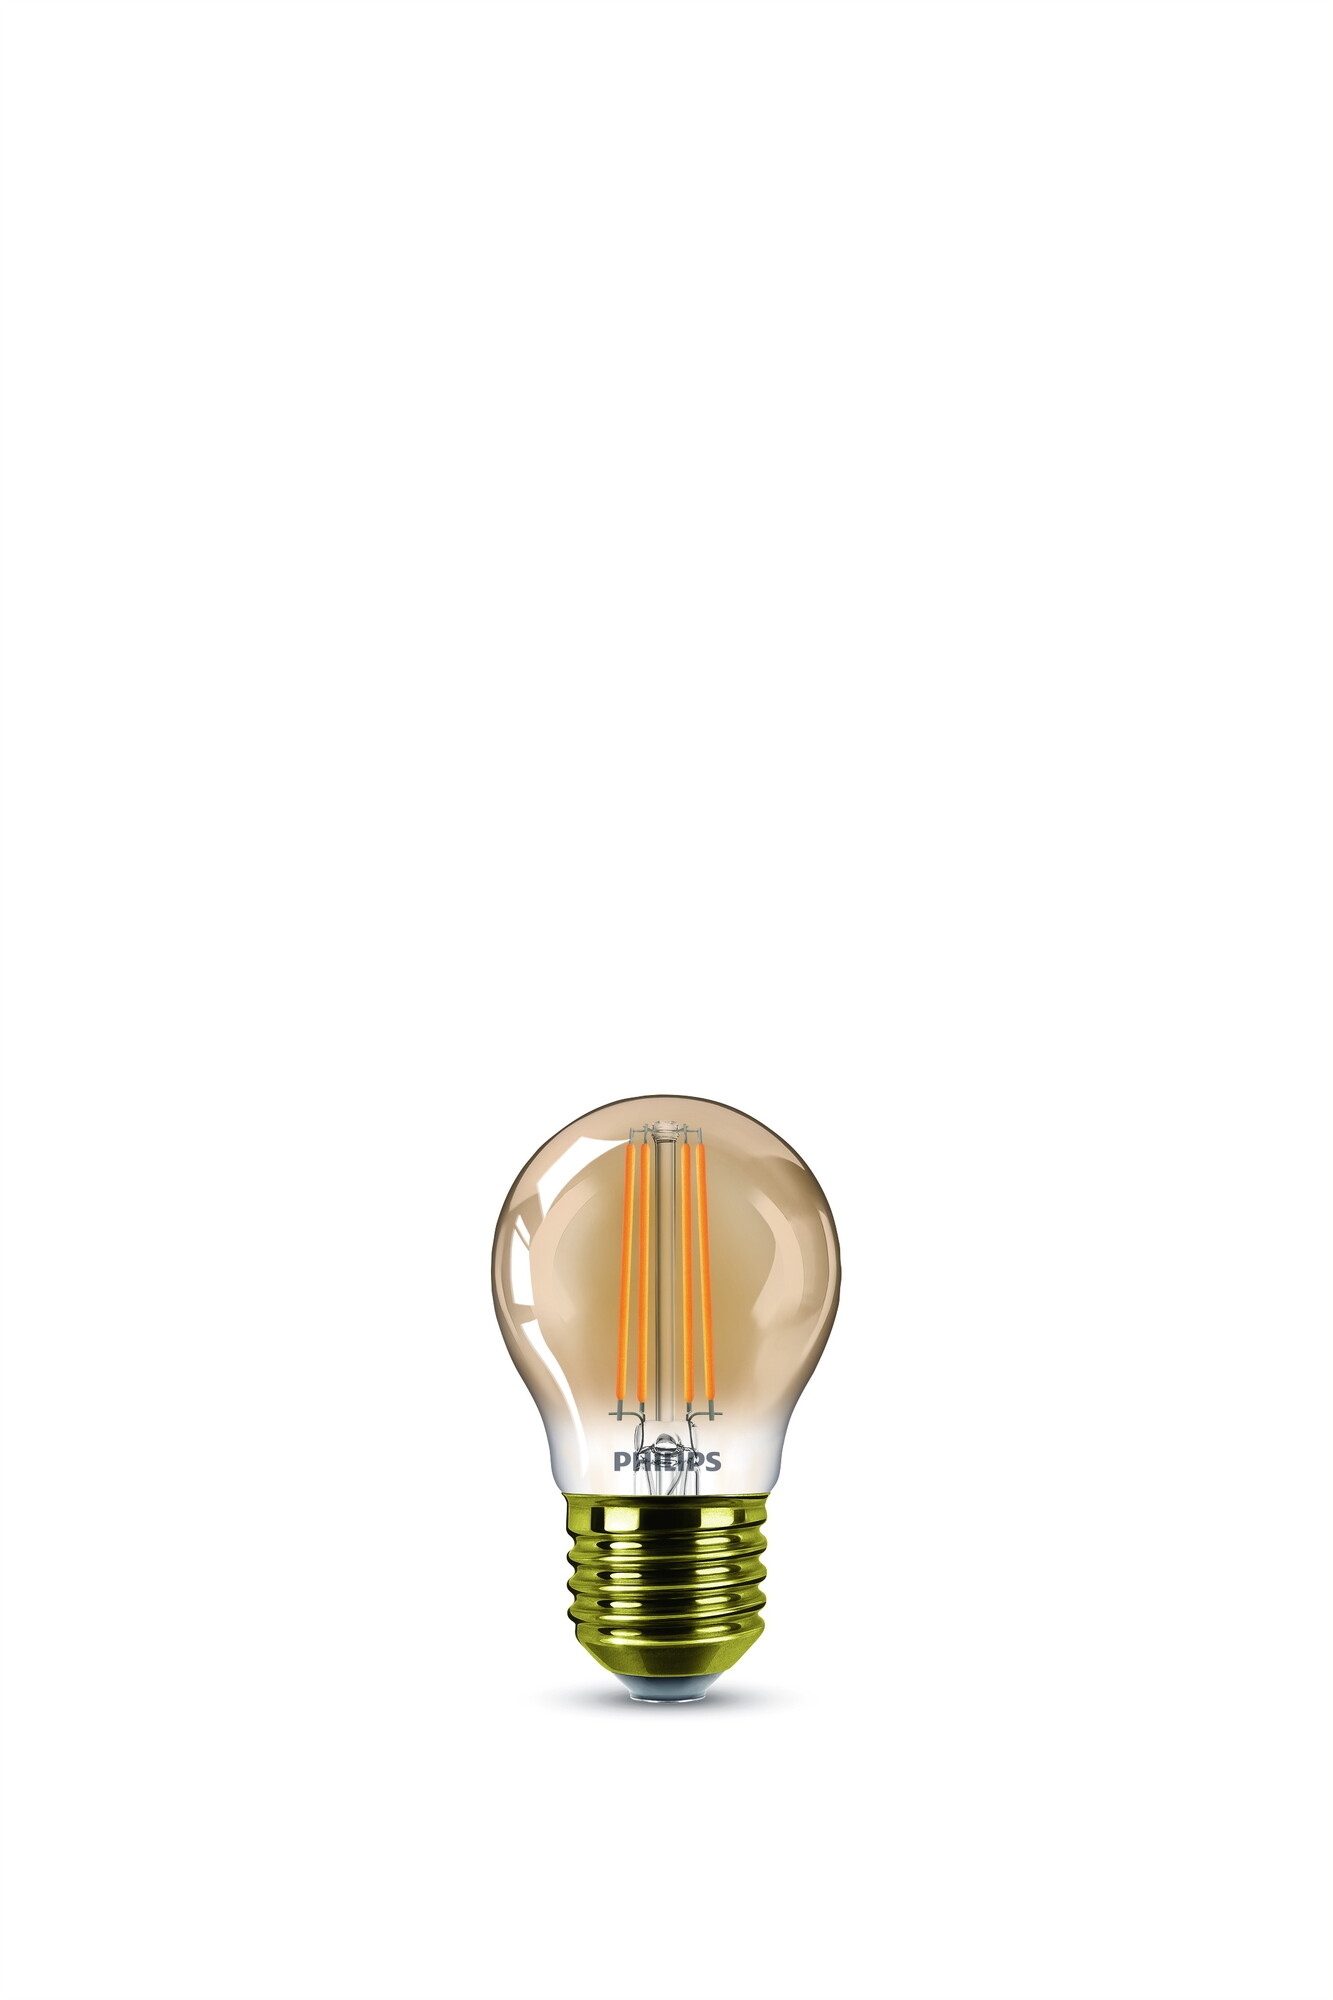 Philips LED classic E27 5W 350lm 2200K Gouden coating